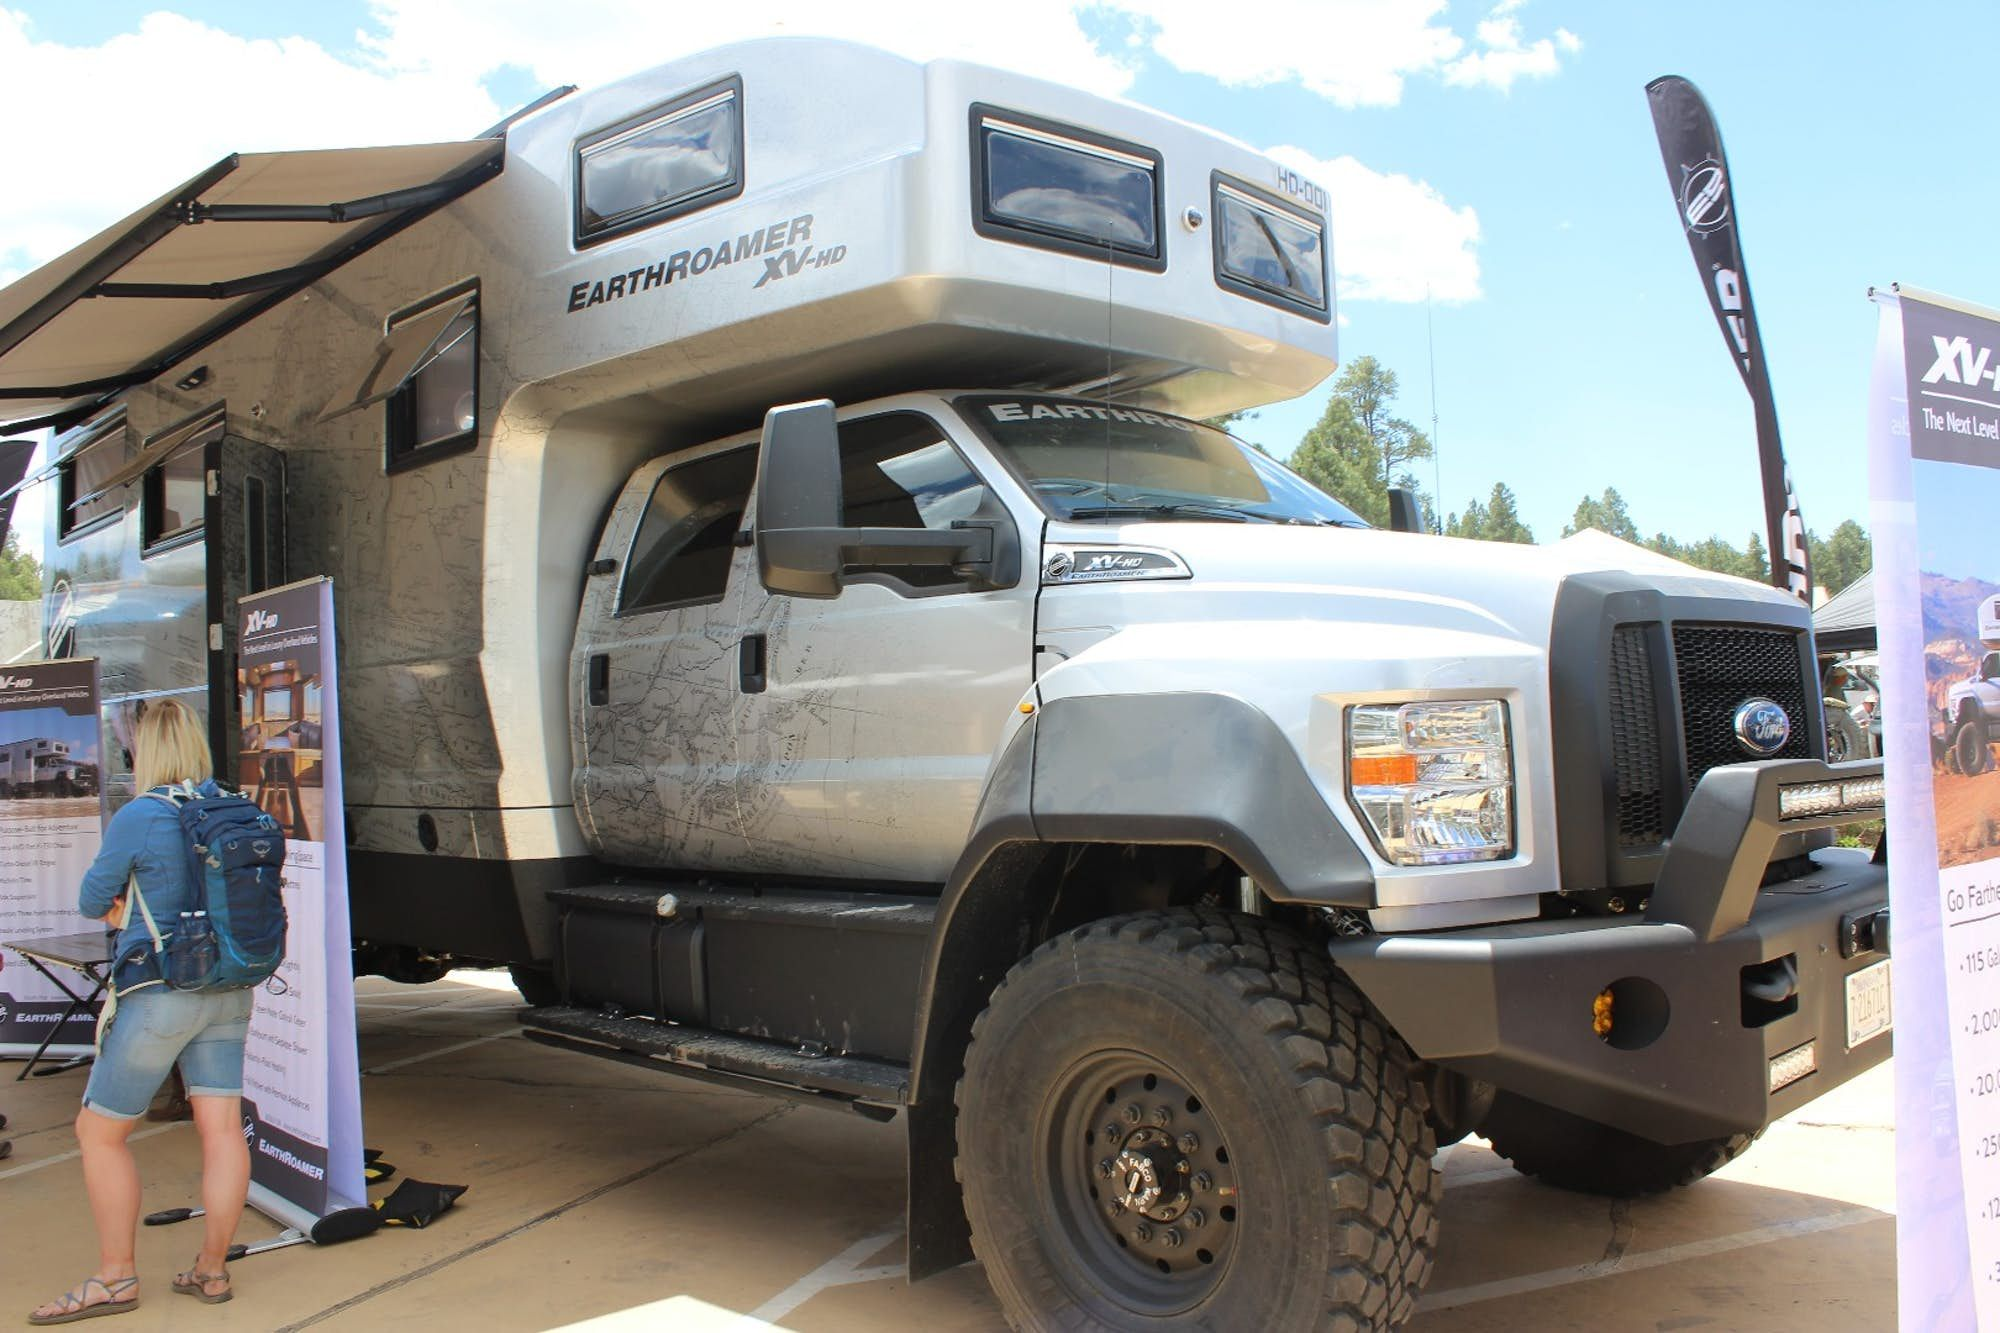 Overland truck by Mission Overland on Mission Overland